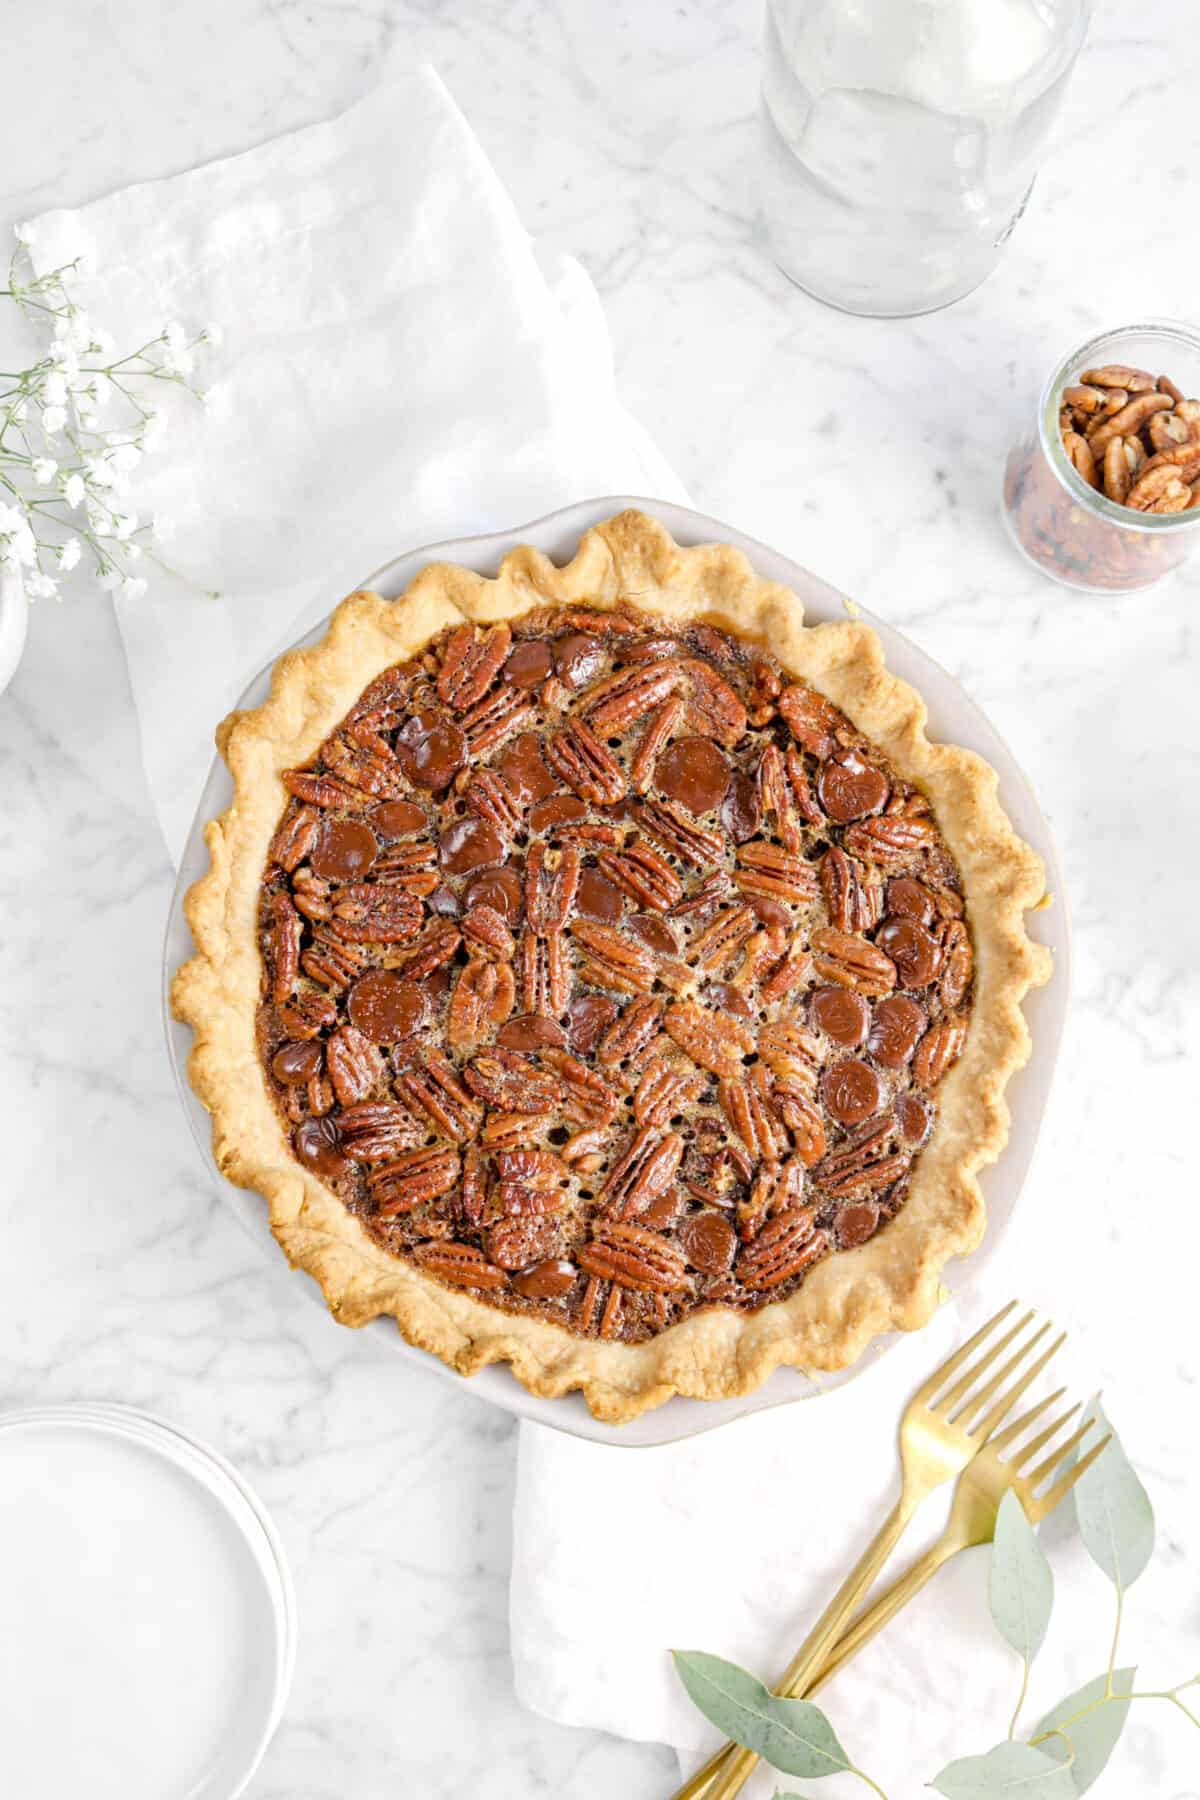 overhead shot of pecan pie on a white napkin with forks, flowers, and jars